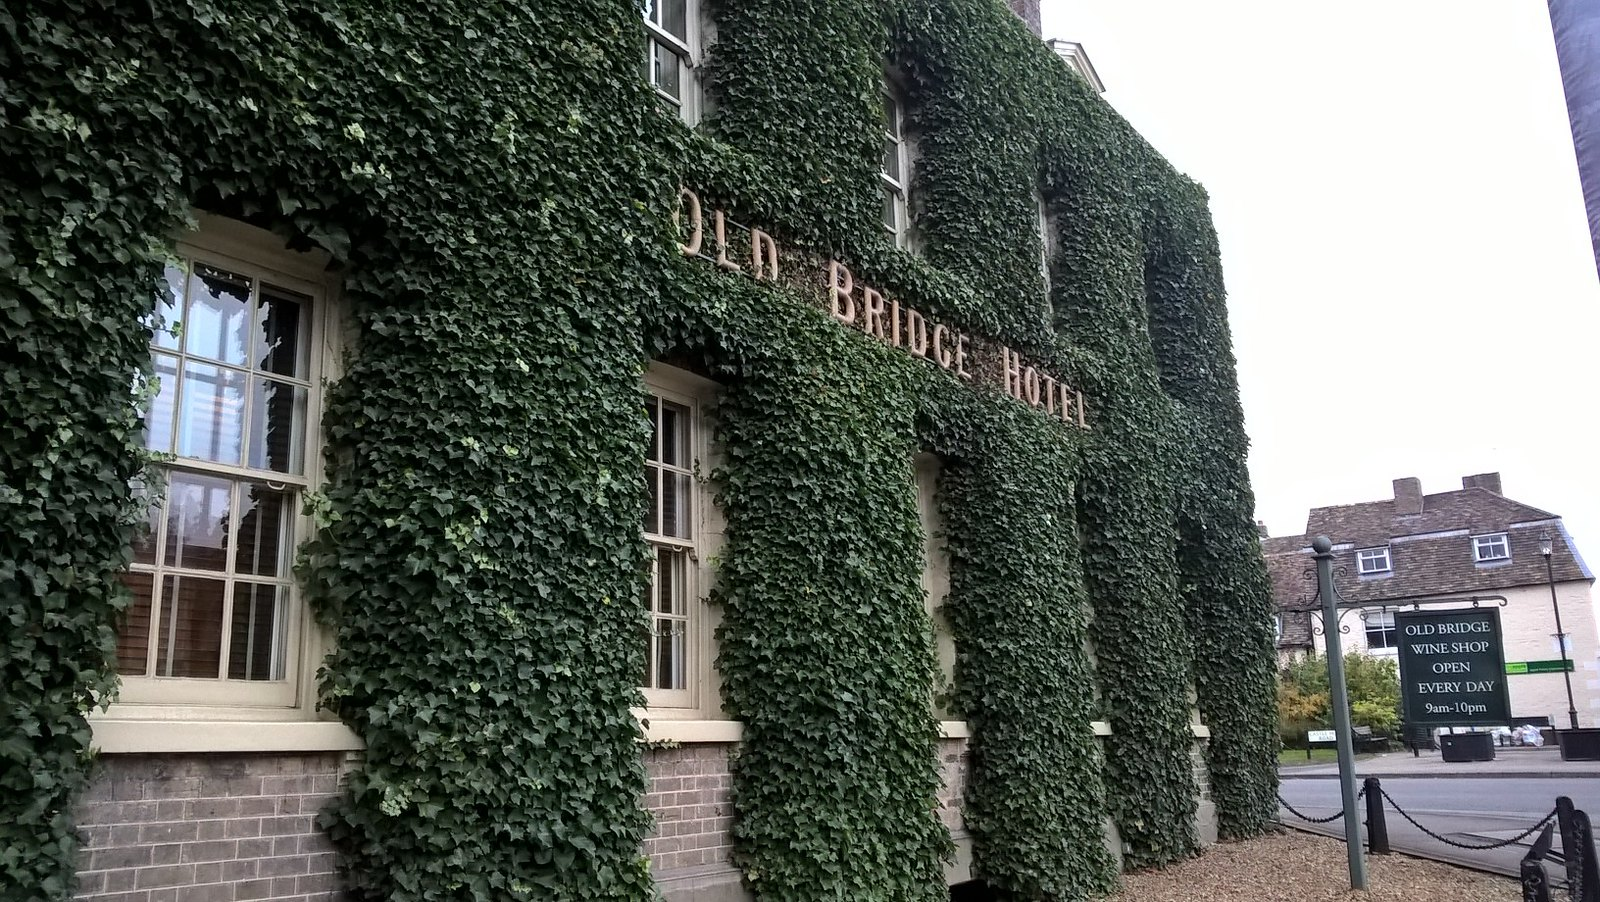 Old Bridge Hotel Huntingdon Moss covered building near the river.